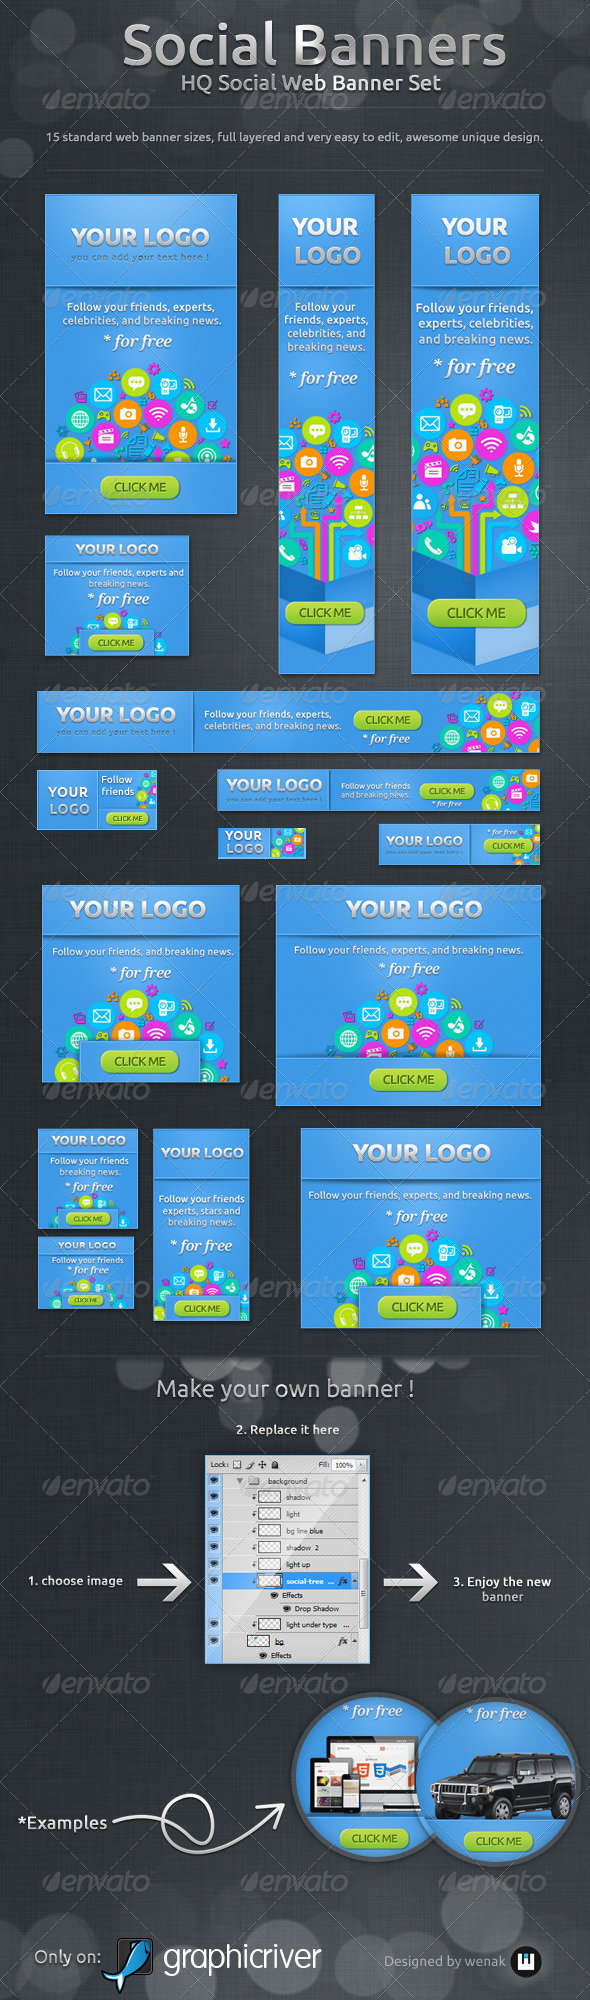 GraphicRiver Social Banners Social Web Banner Set 4160602